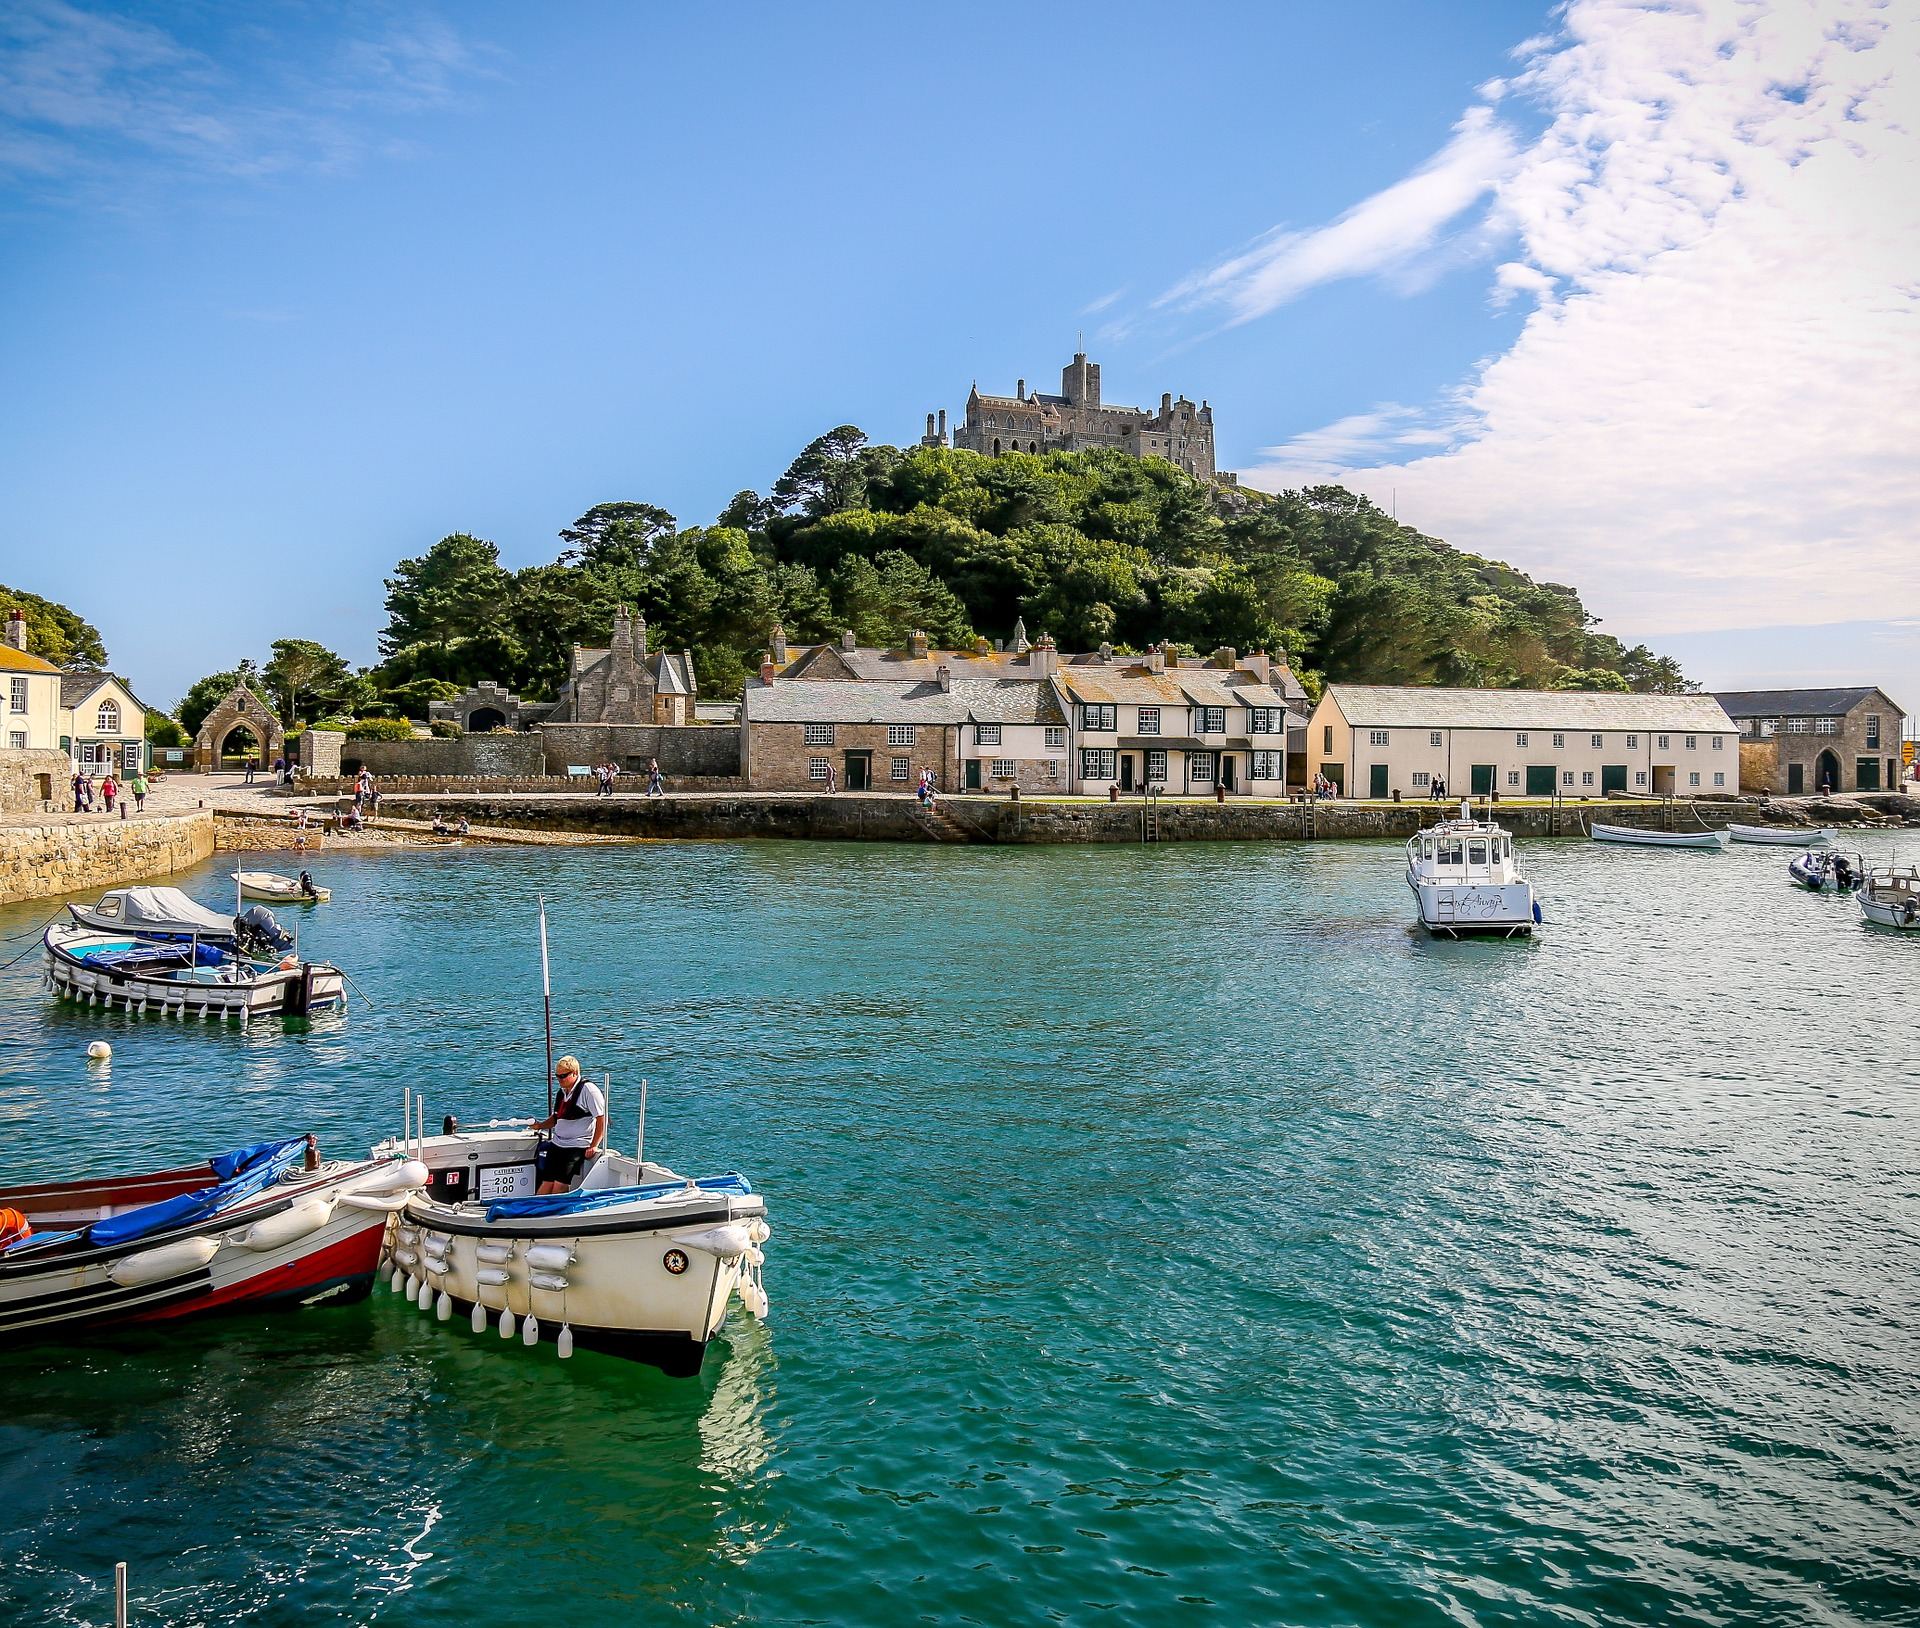 st-michaels-mount-harbour-1086753_1920.jpg